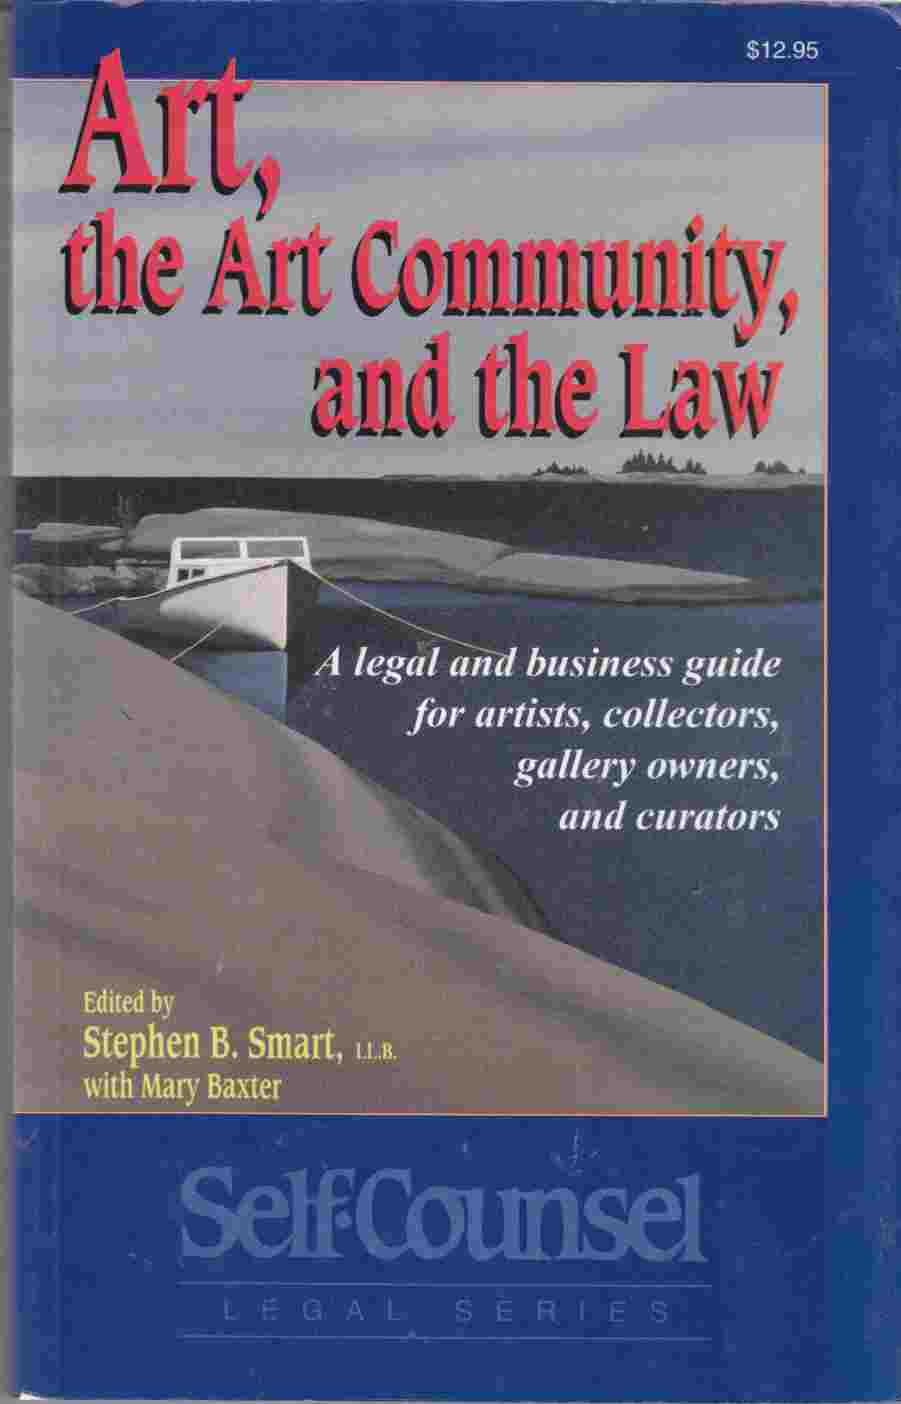 Image for Art, the Art Community, and the Law: A Legal and Business Guide for Artists, Collectors, Gallery Owners, and Curators